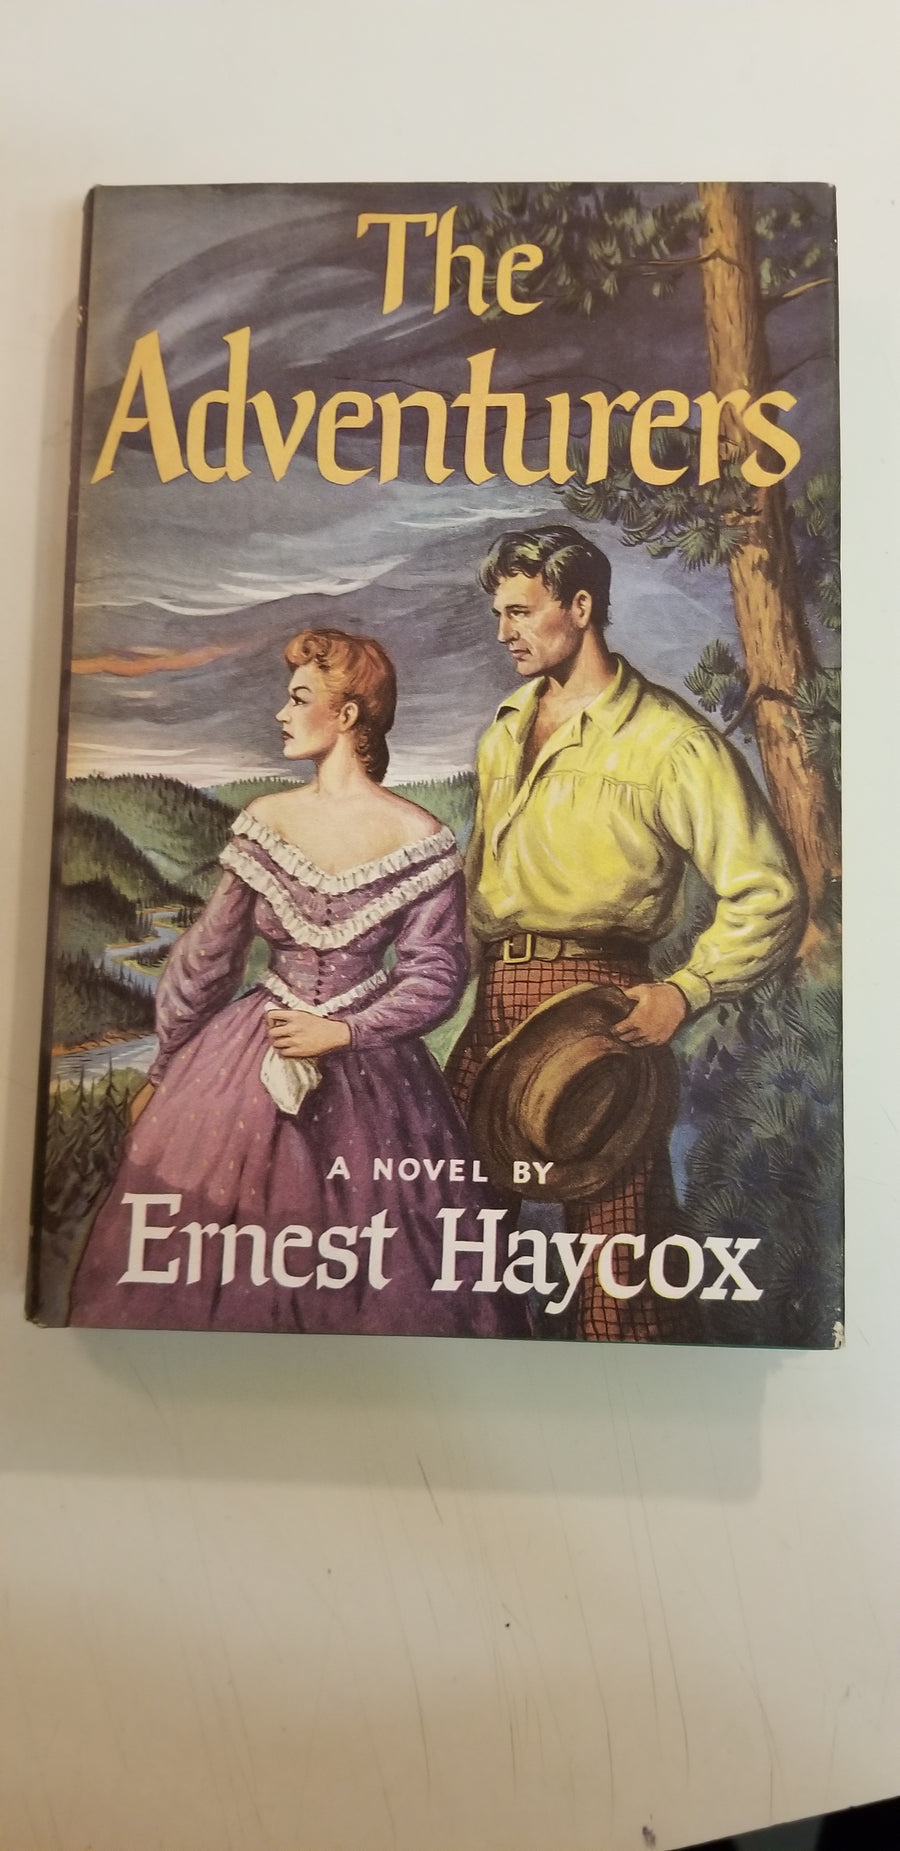 1954, The adventurers, ernest haycox,